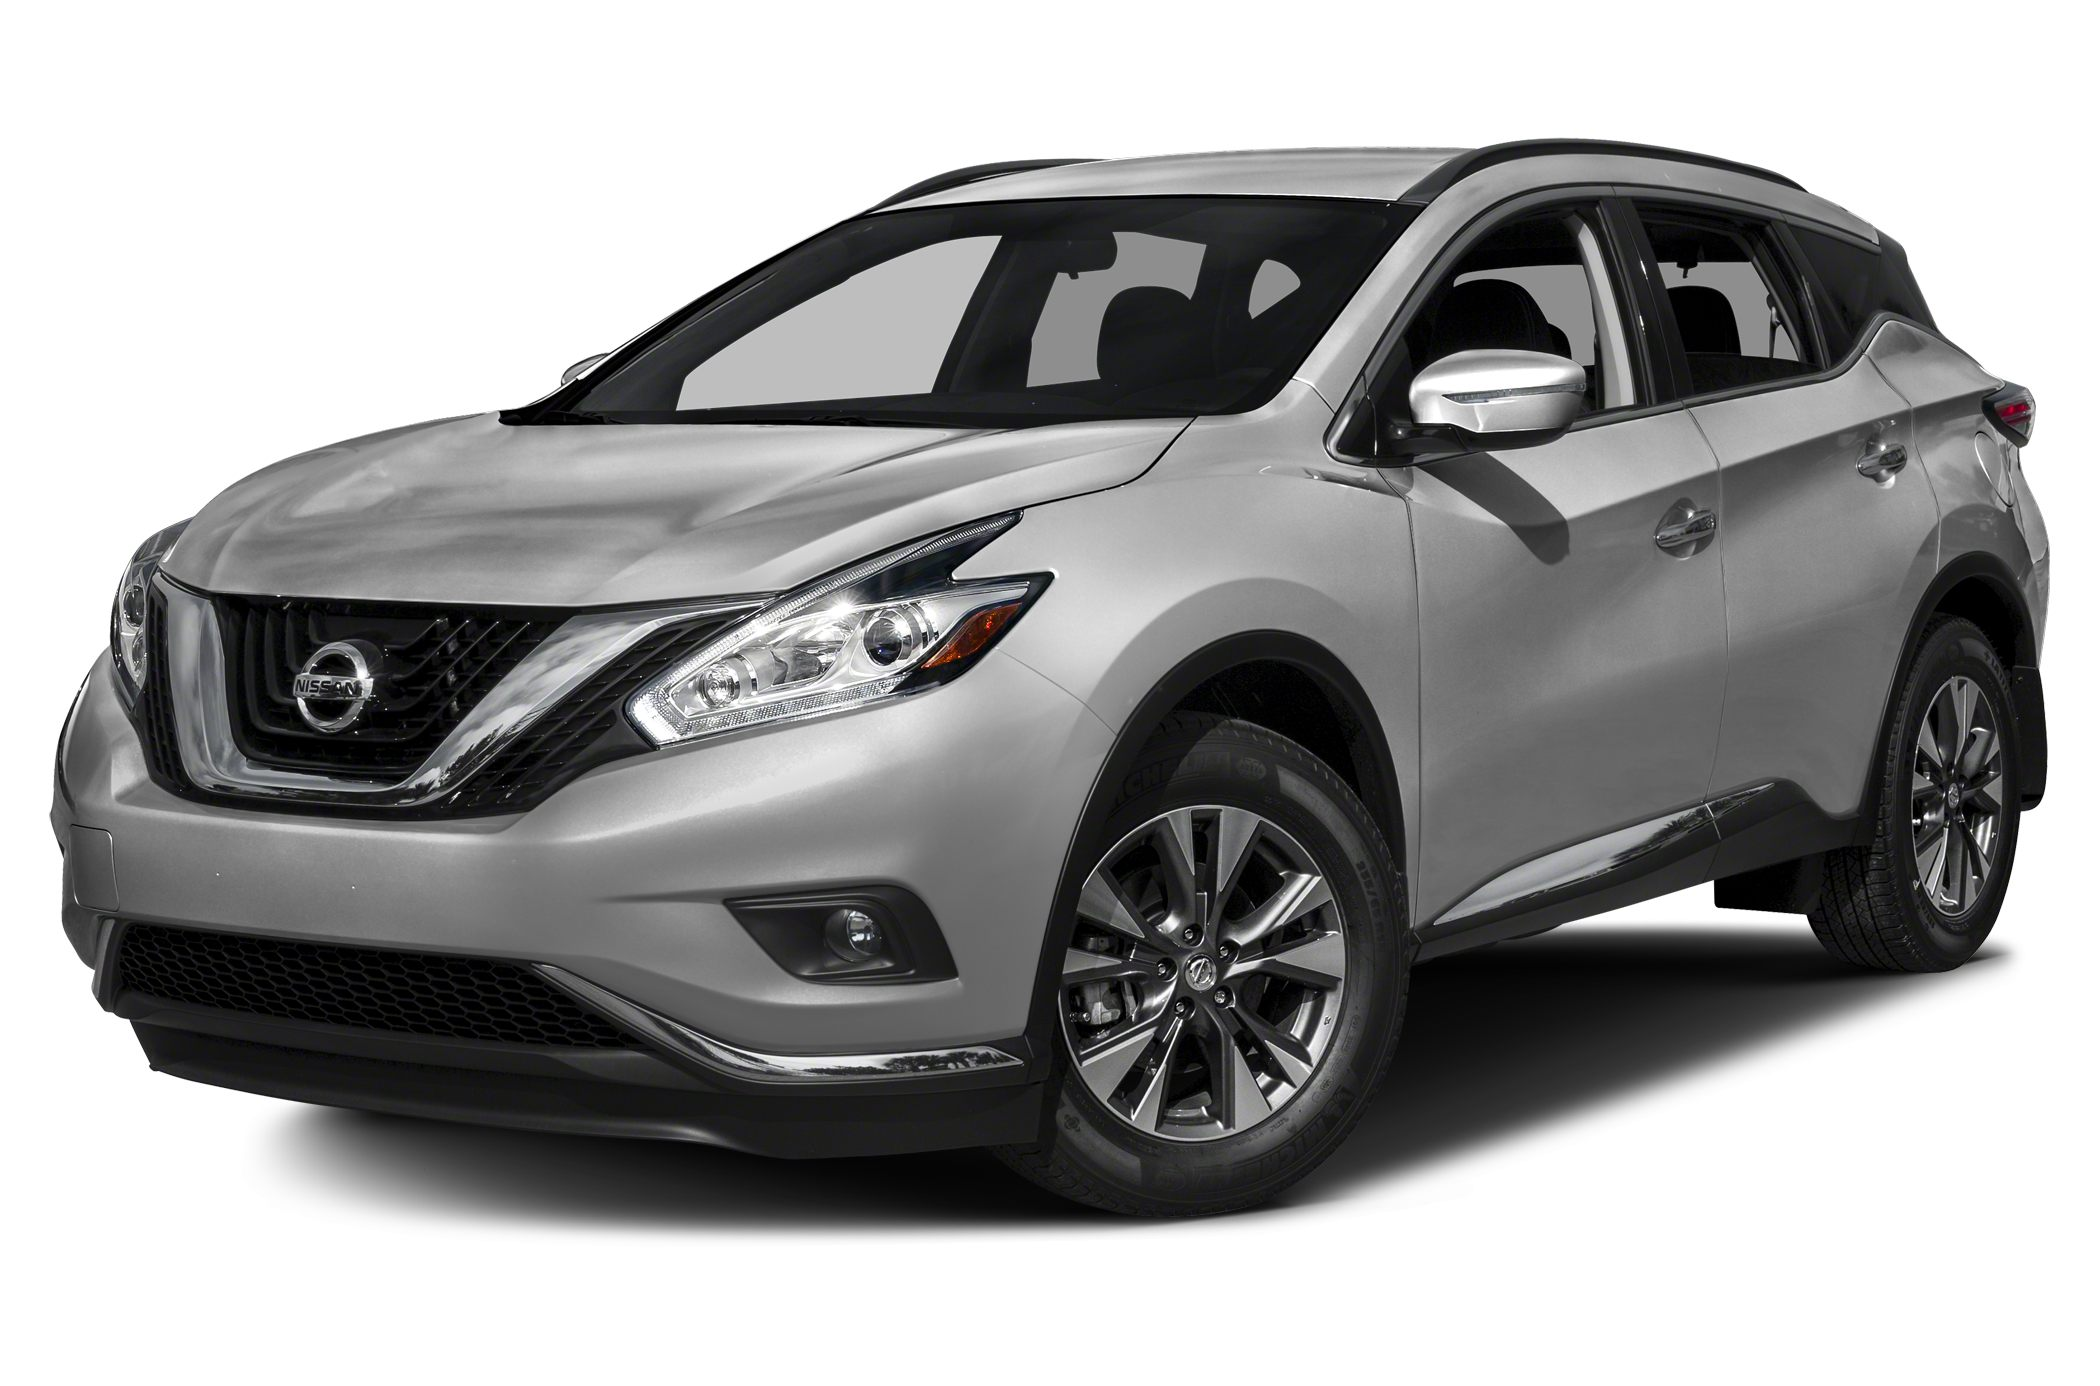 nissan murano news photos and buying information autoblog. Black Bedroom Furniture Sets. Home Design Ideas